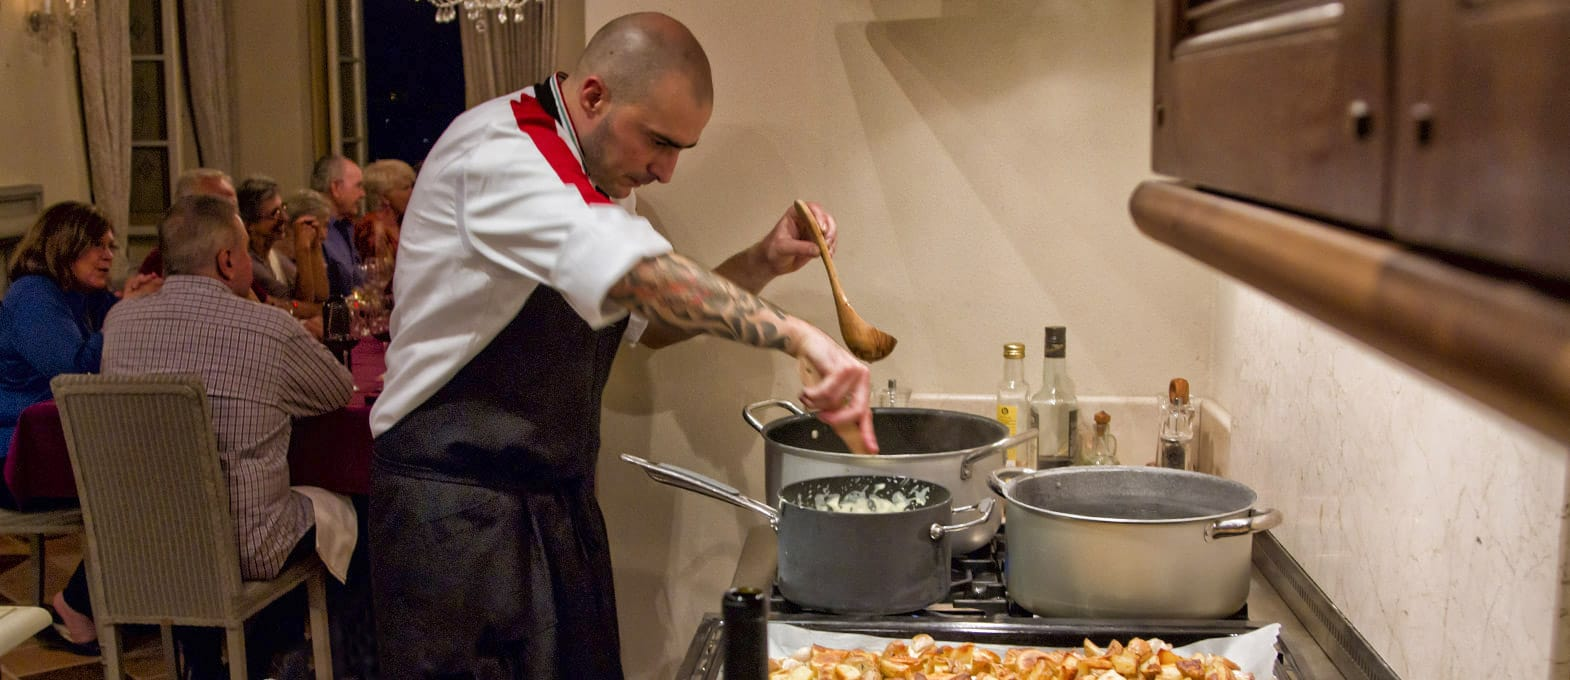 Personal Chef At Home And Cooking Classes In Cortona Arezzo Tuscany